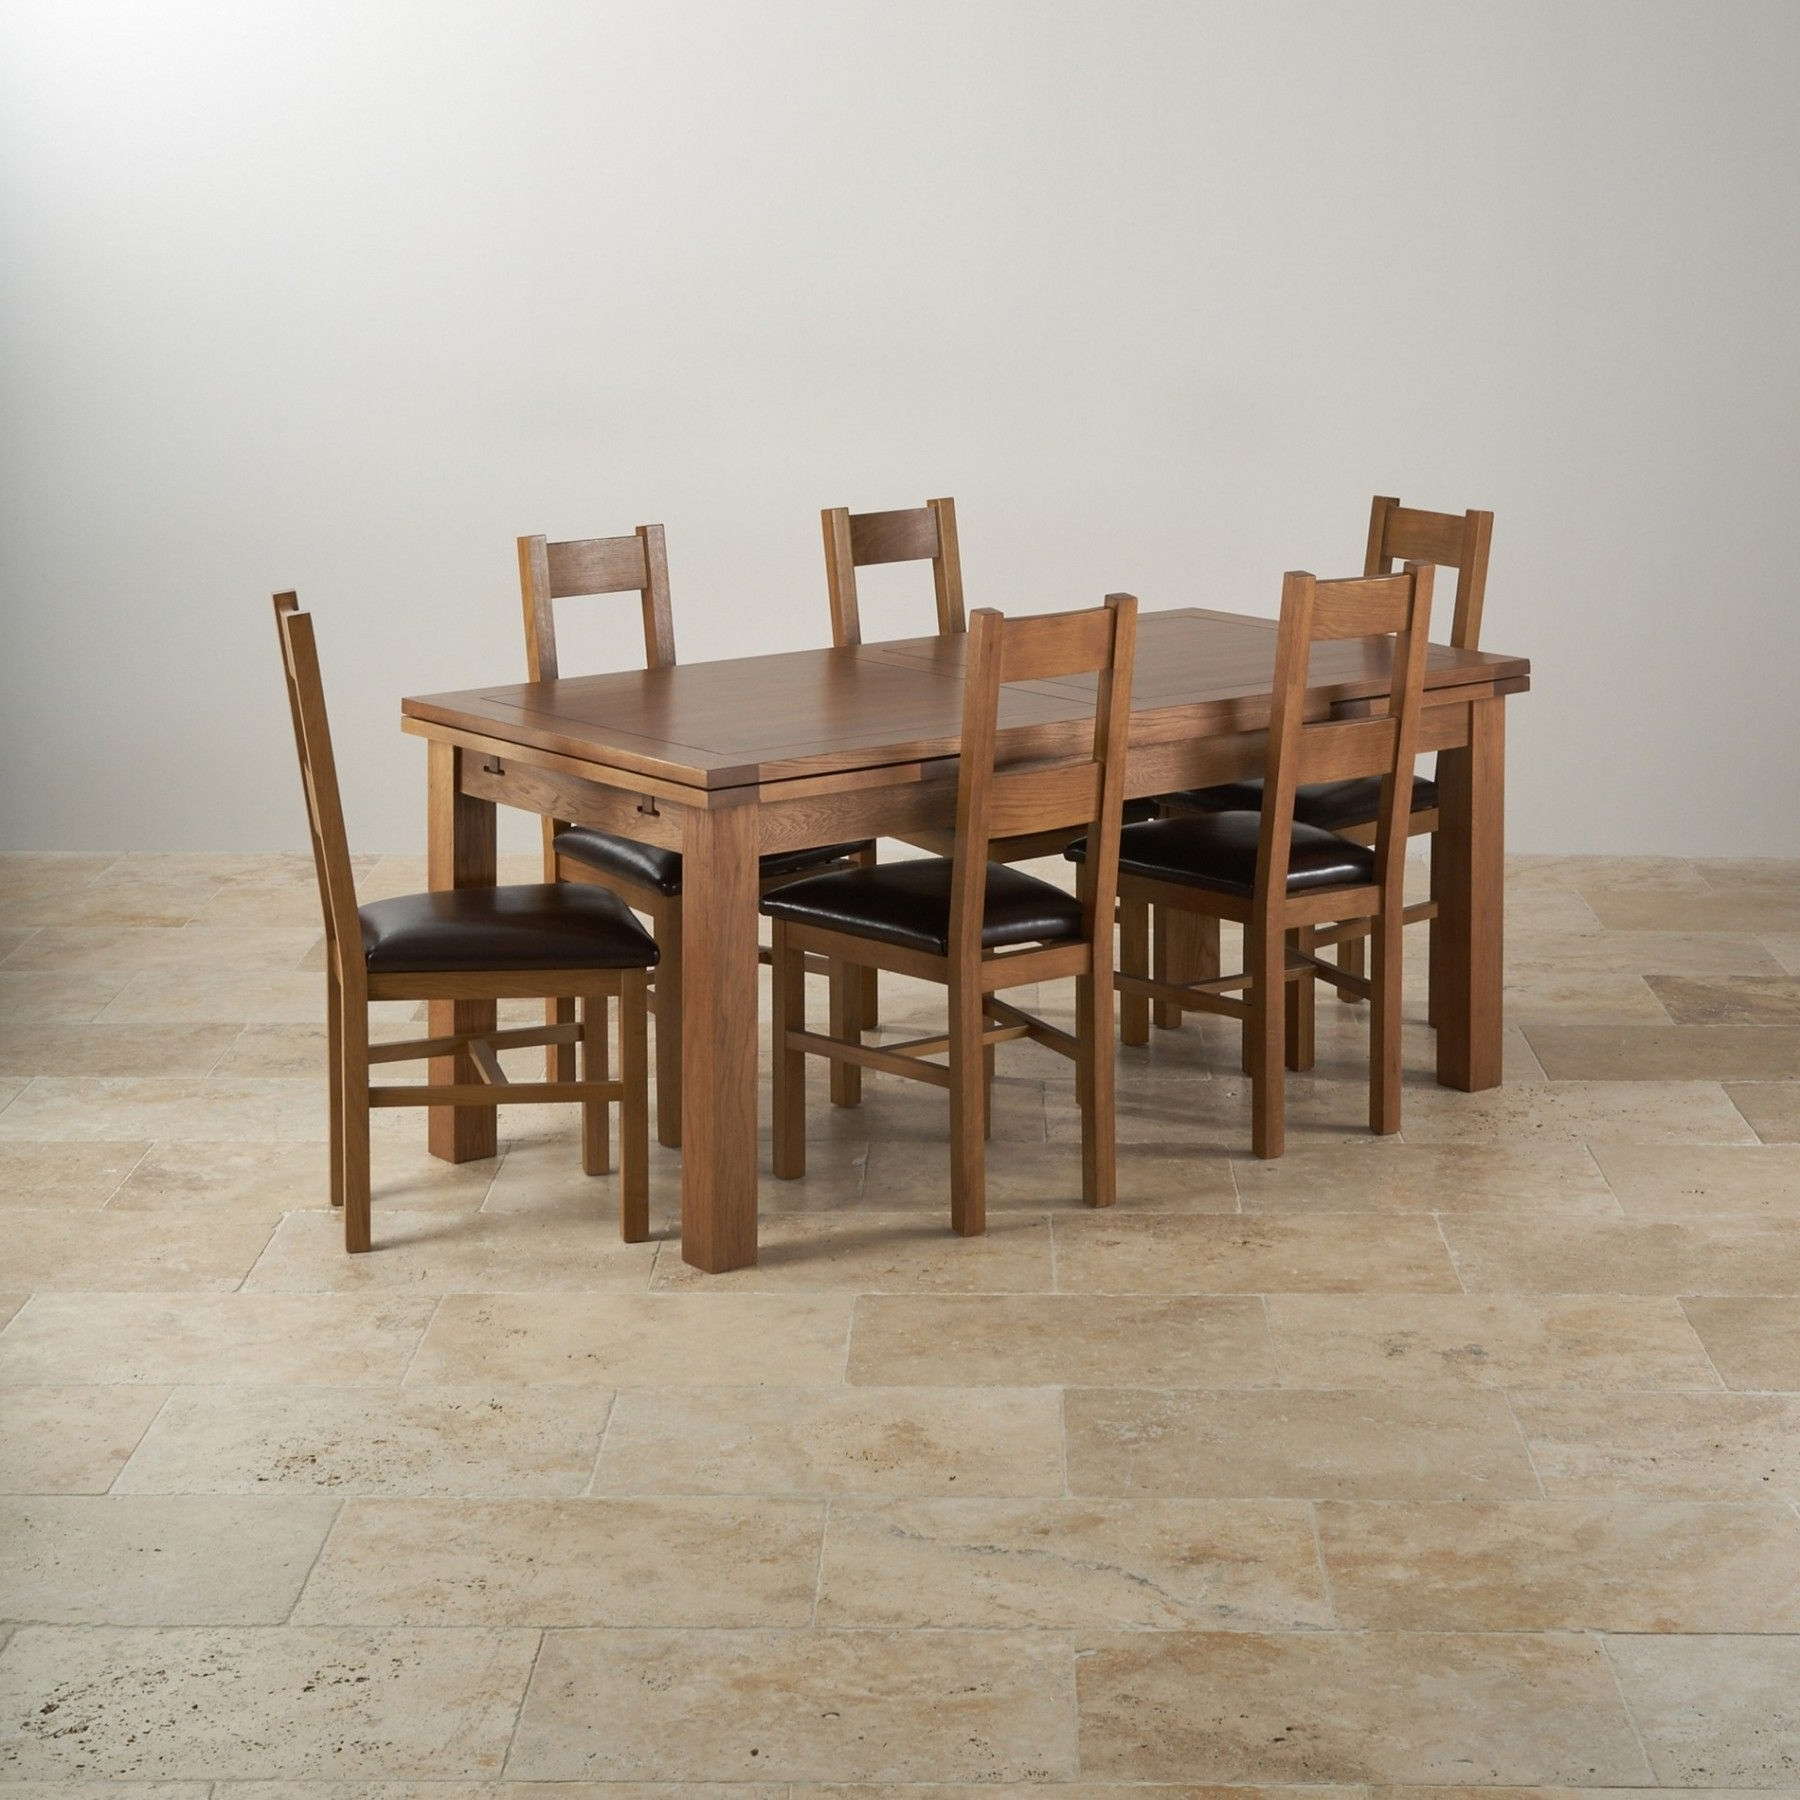 3Ft Dining Tables Pertaining To Recent The Rustic Solid Oak 6Ft X 3Ft Extending Dining Table With Six (View 3 of 25)